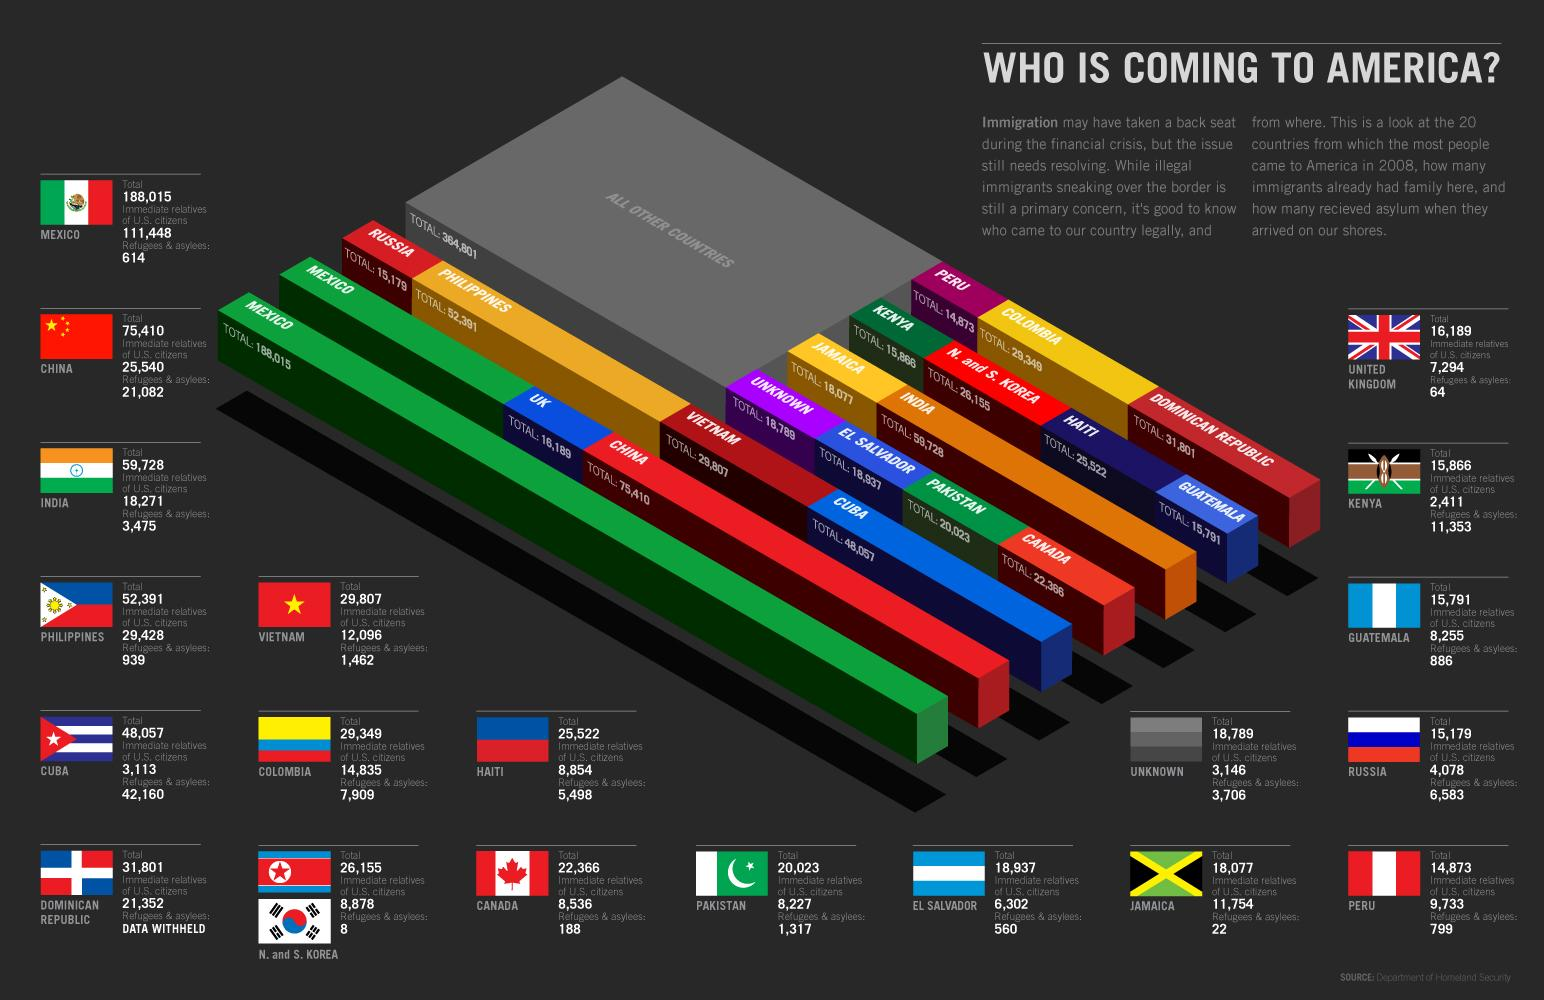 Who is coming to america infographic